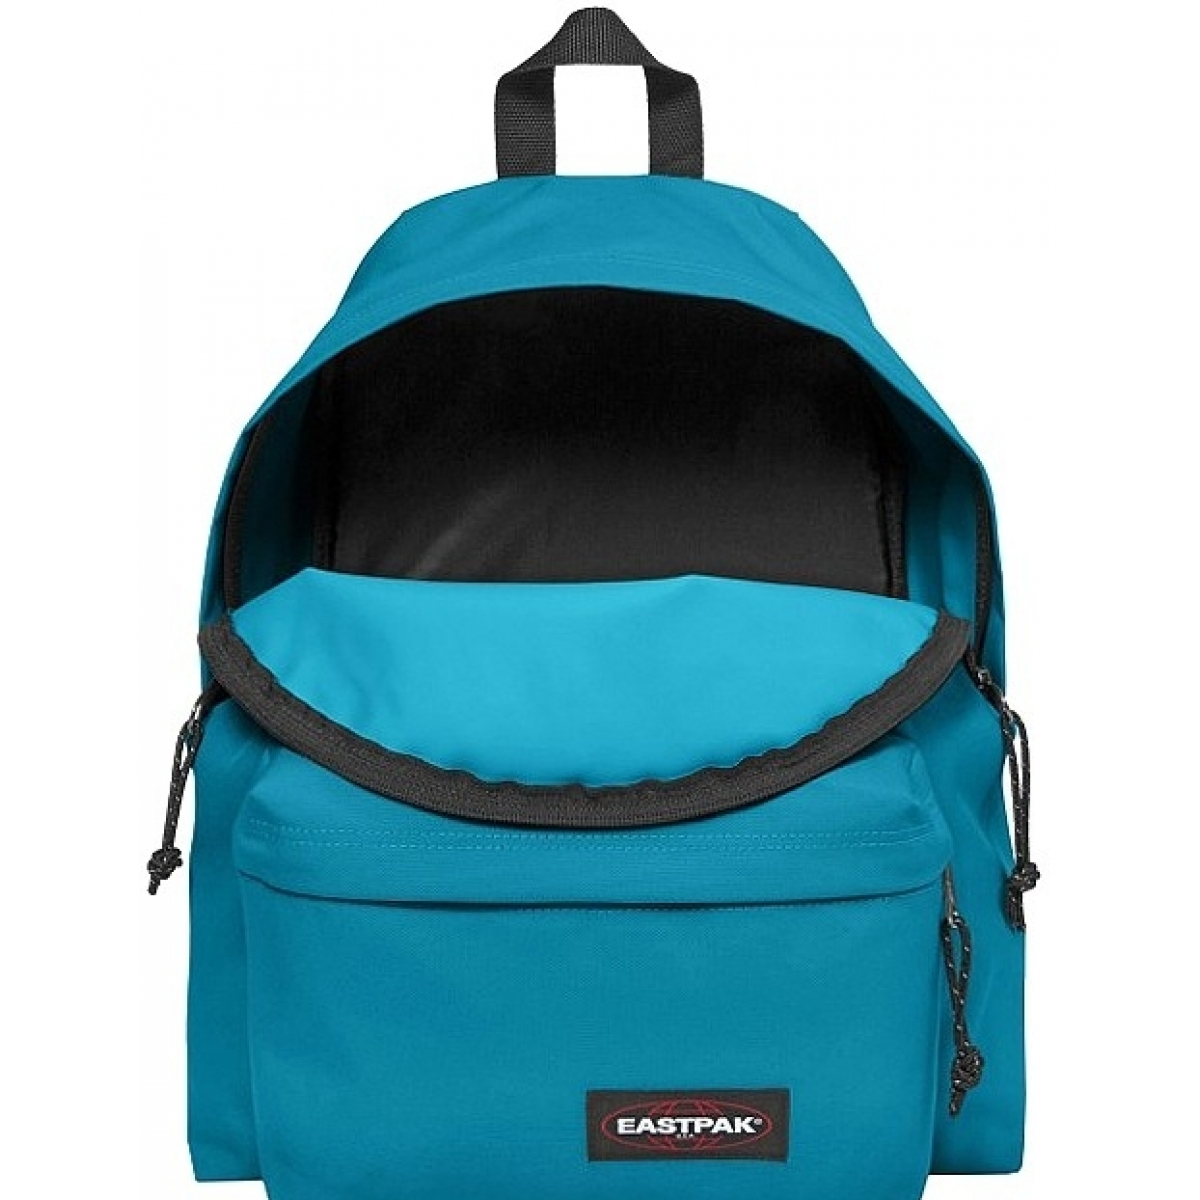 sac dos scolaire eastpak ek620 novel blue ek62054t couleur principale assortis. Black Bedroom Furniture Sets. Home Design Ideas